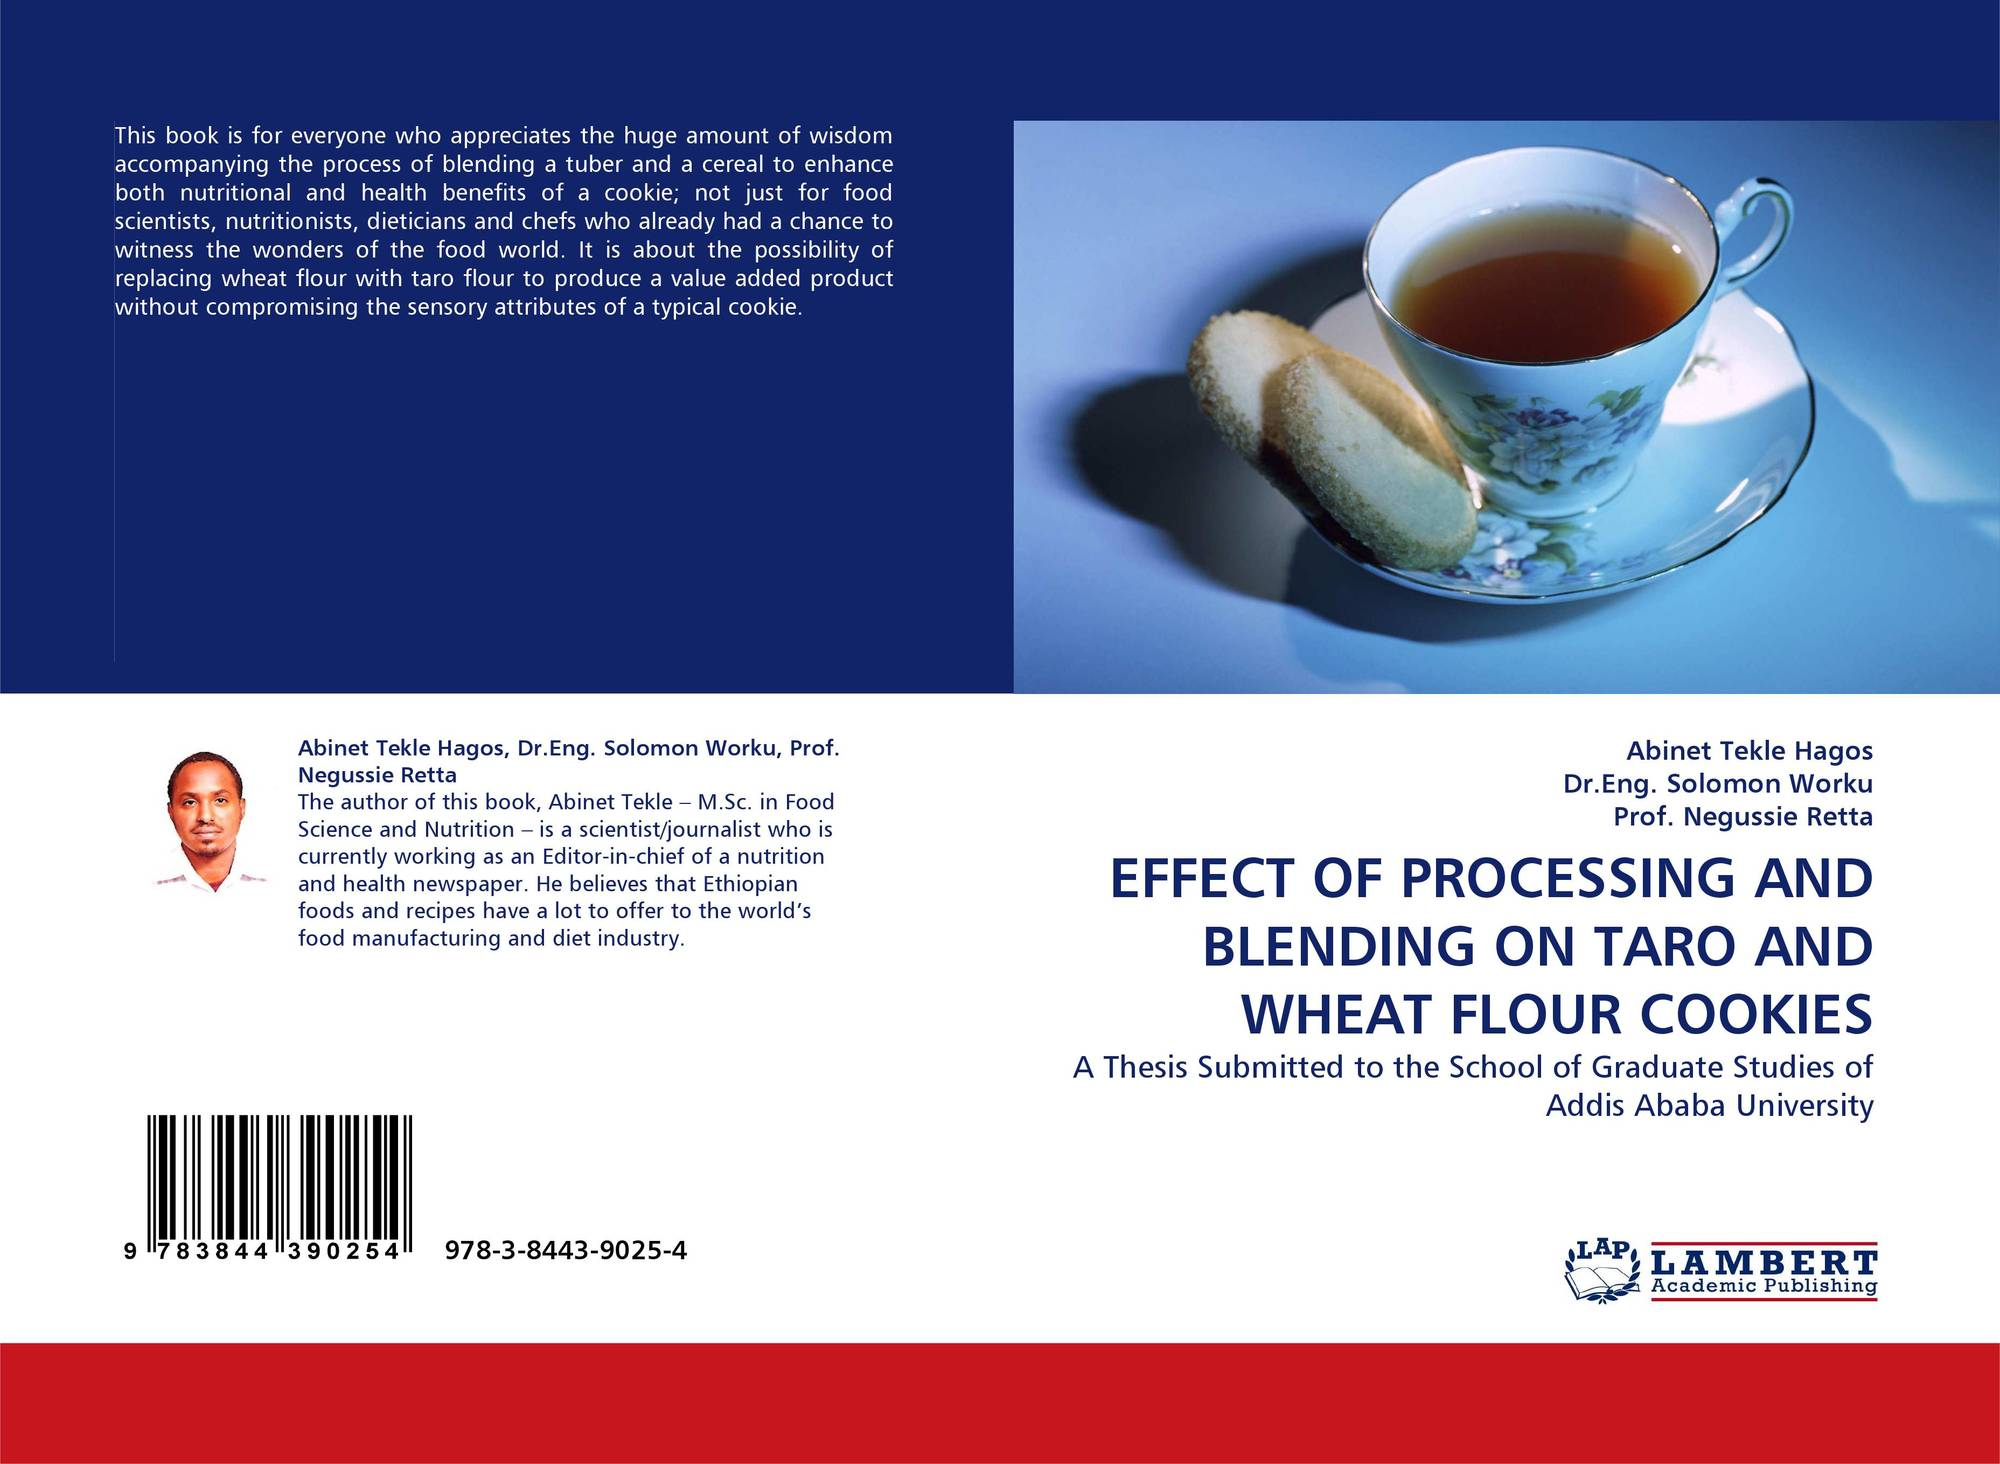 EFFECT OF PROCESSING AND BLENDING ON TARO AND WHEAT FLOUR